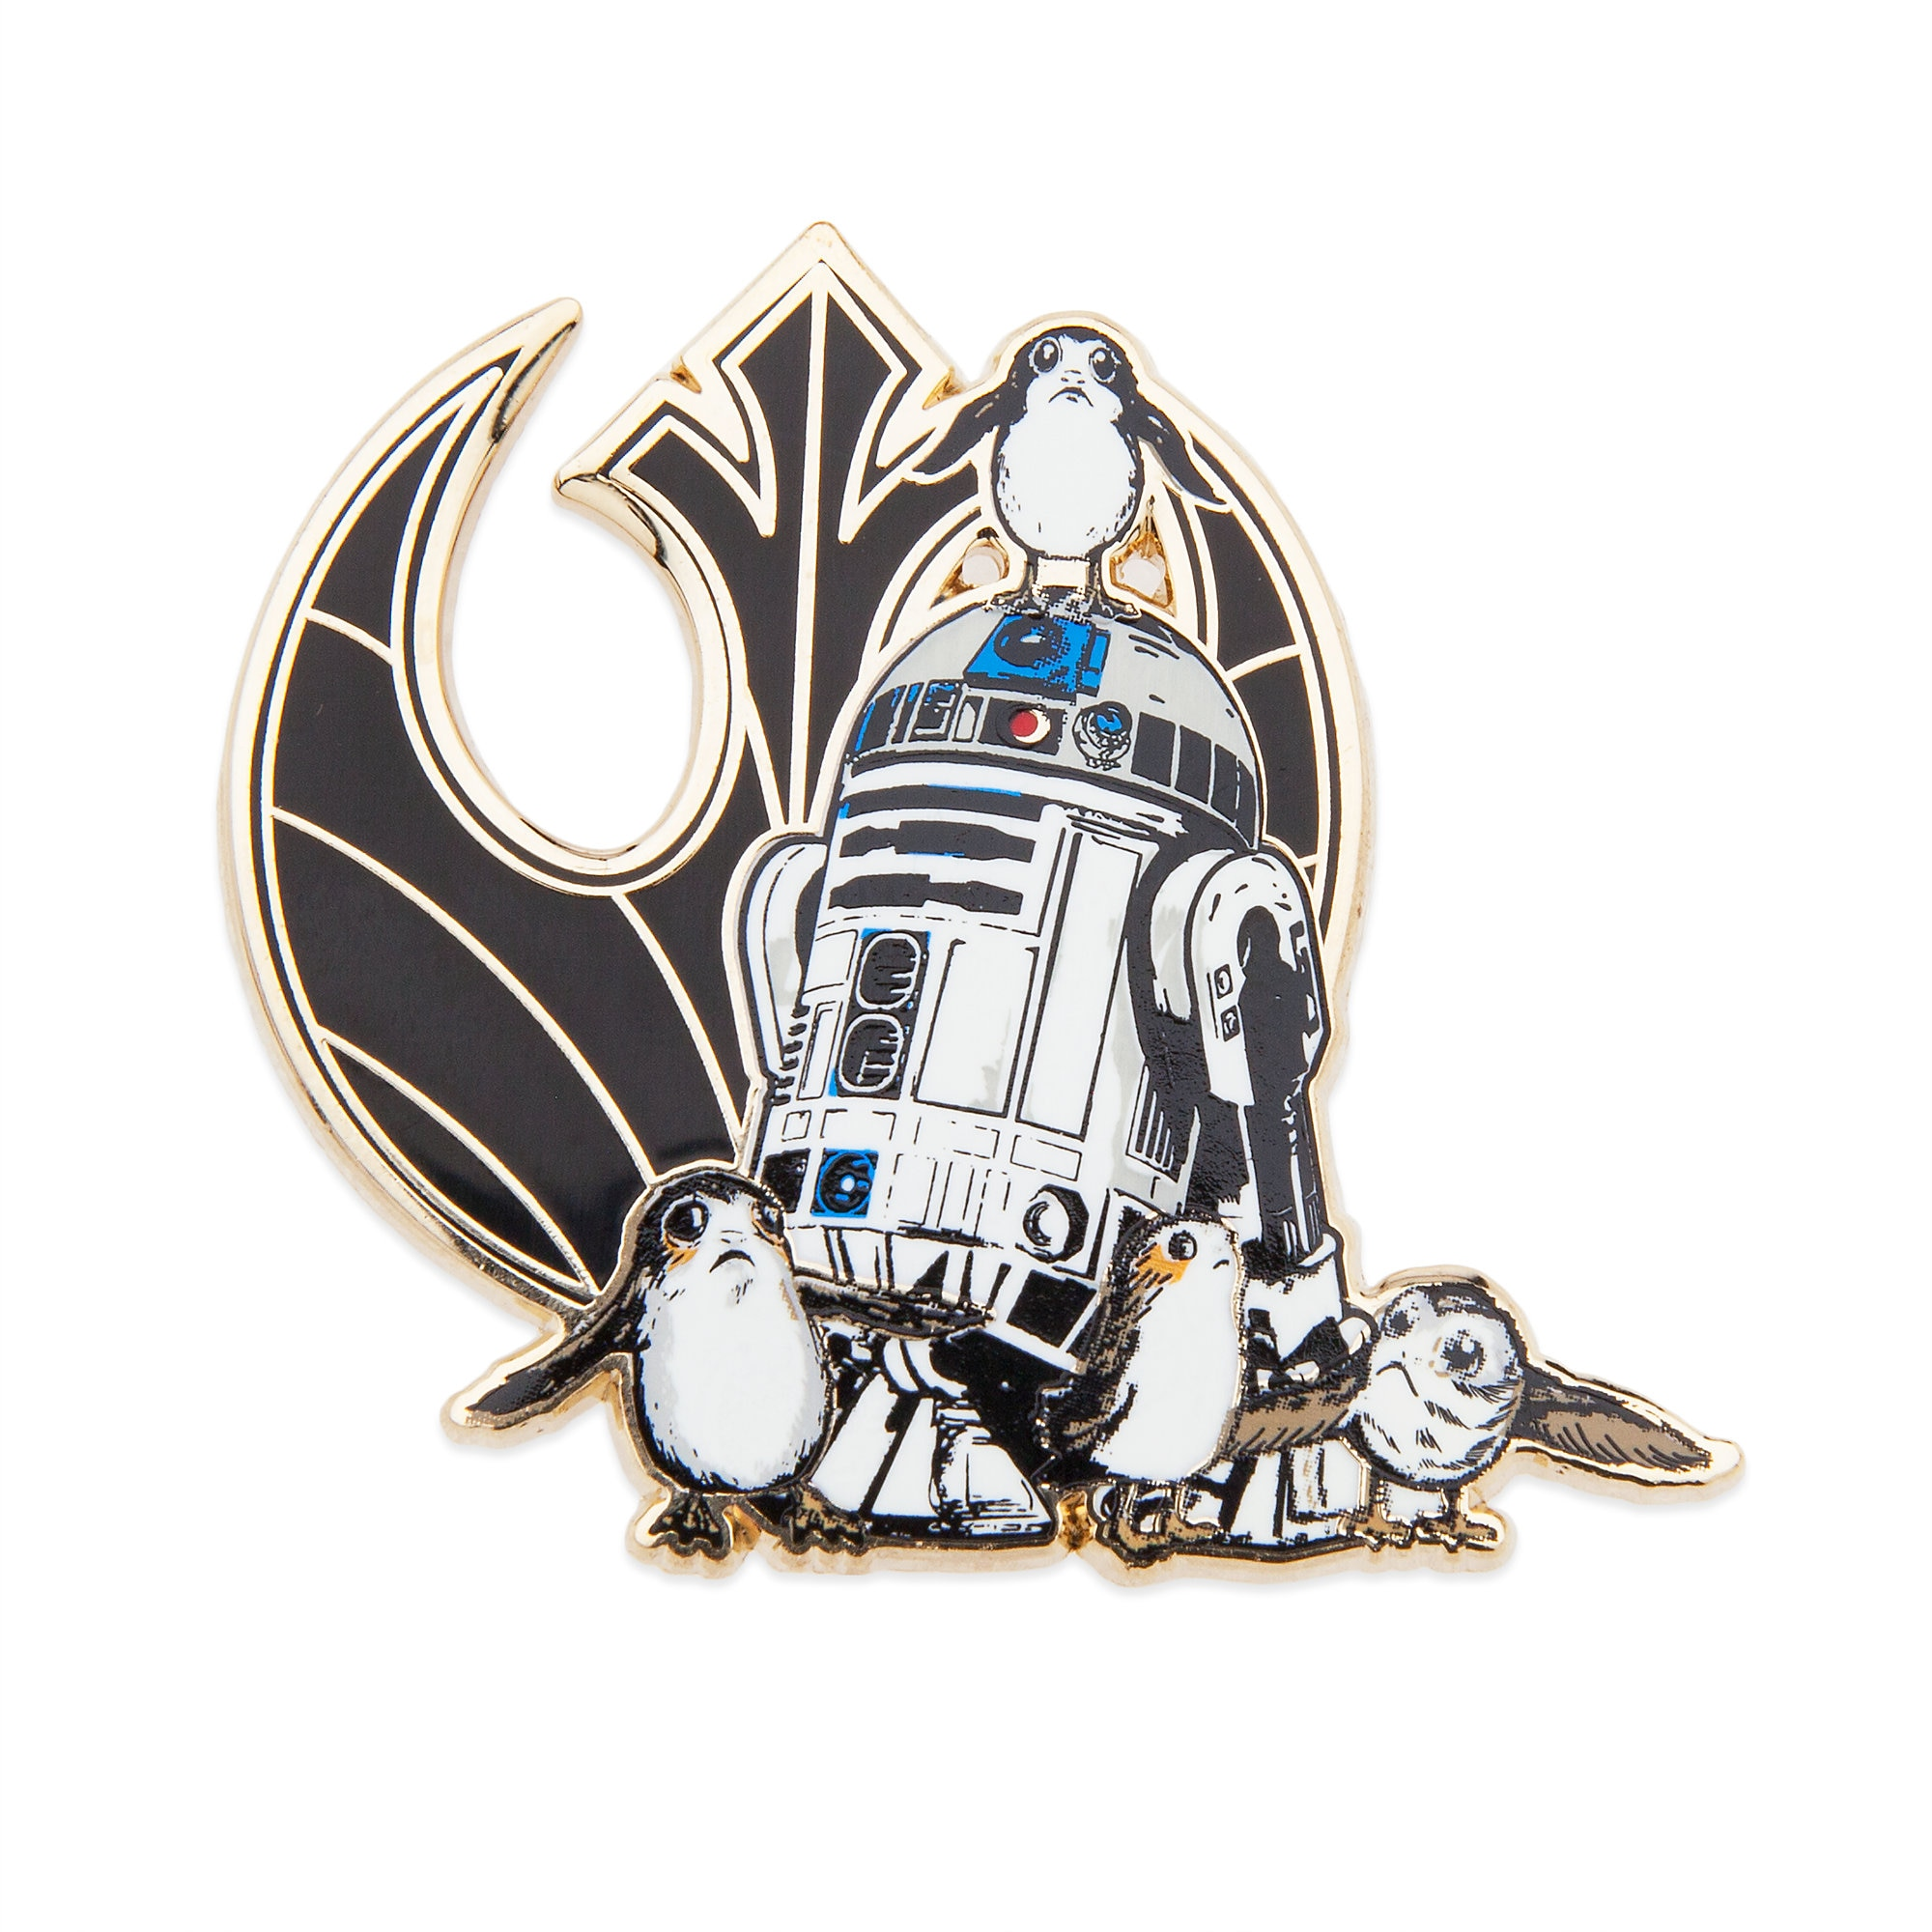 R2-D2 and Porgs Pin and Lithograph Set - Star Wars: The Last Jedi - Limited Edition